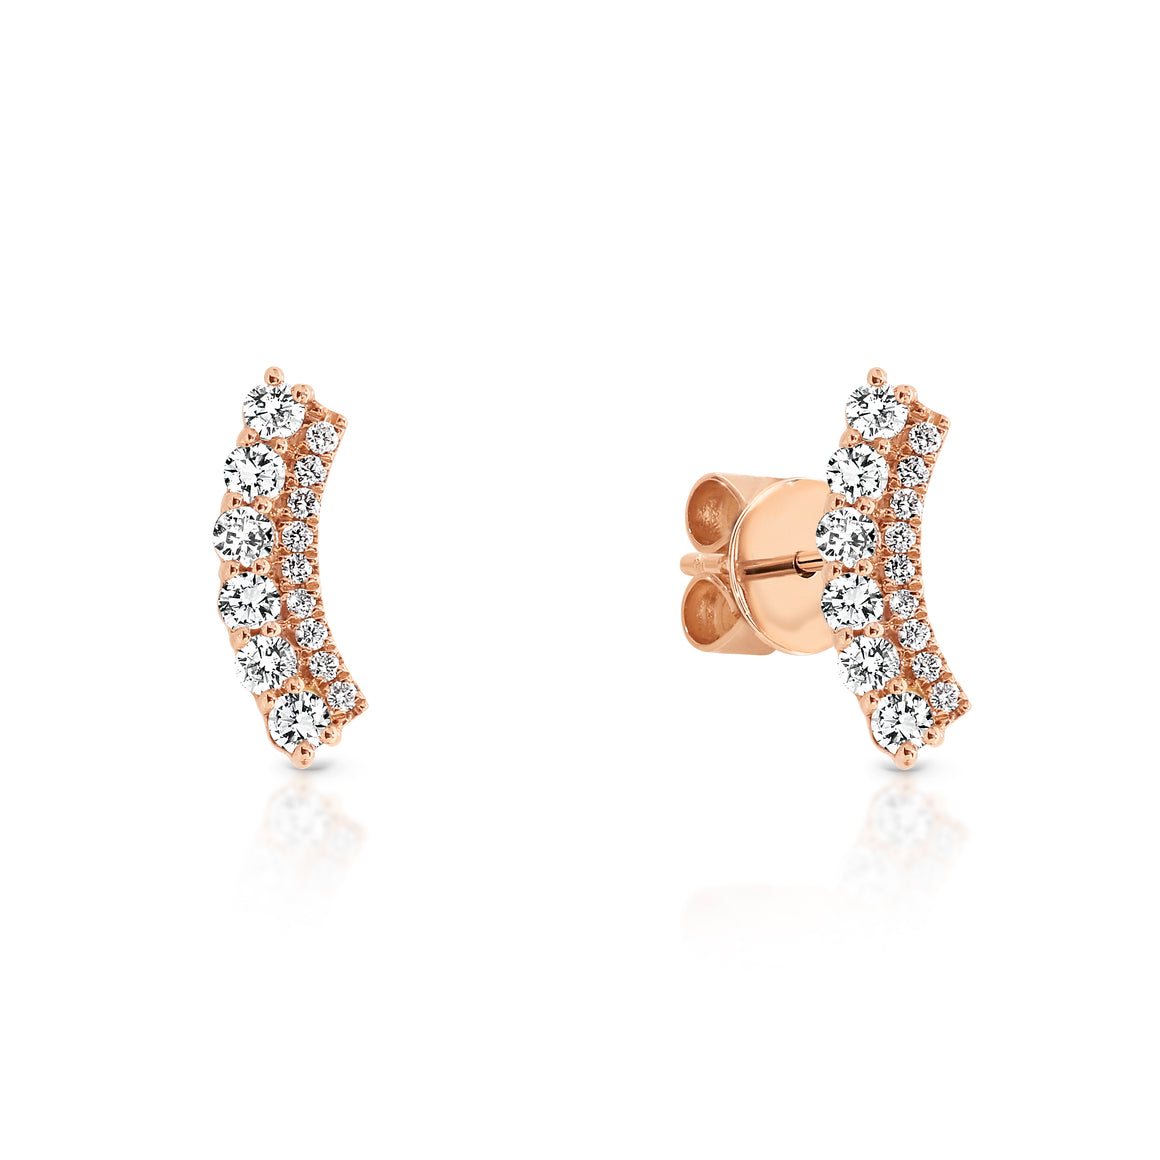 18ct Gold & Diamond 'Heidi' ear climber - Gemma Stone  ABN:51 621 127 866